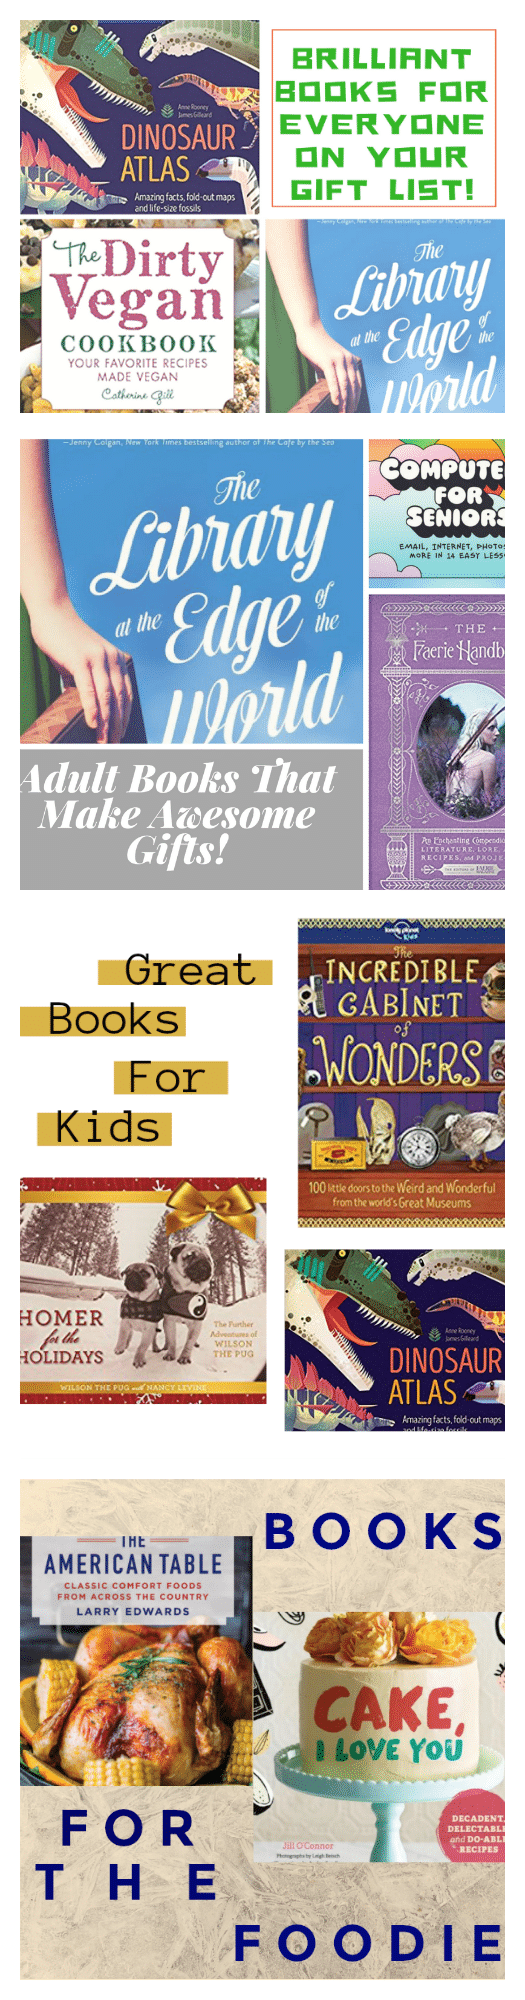 Awesome Book Ideas For The Reader On Your Gift List with suggestions for adults, kids, foodies, romantics and more!